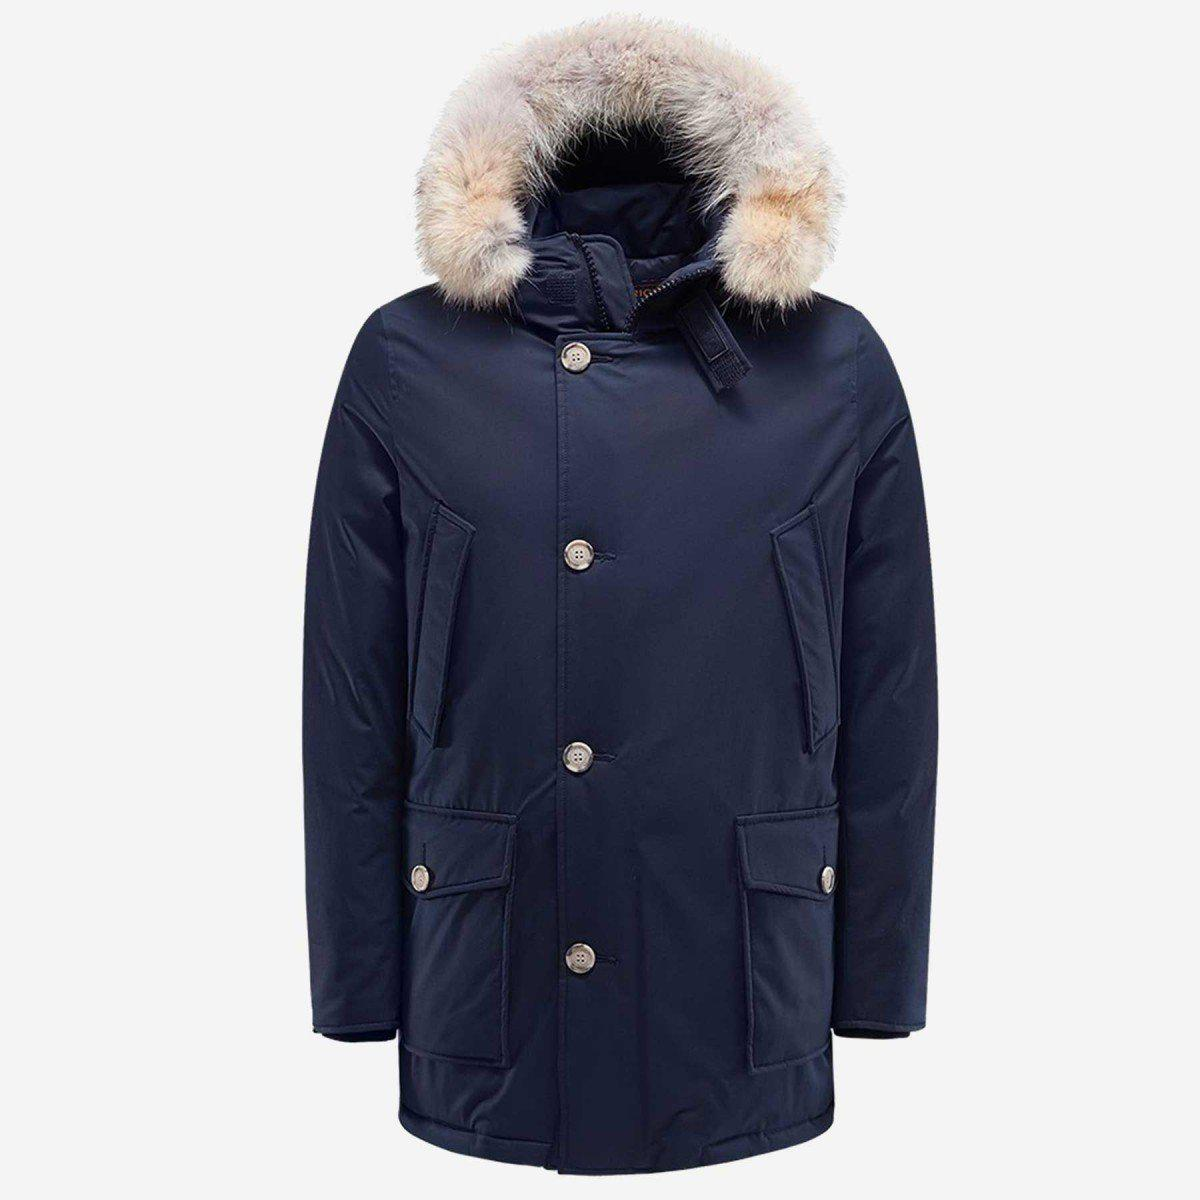 Woolrich Laminated Cotton Parka Hc-Jacket-Woolrich-M-DARK NAVY-Classic fashion CF13